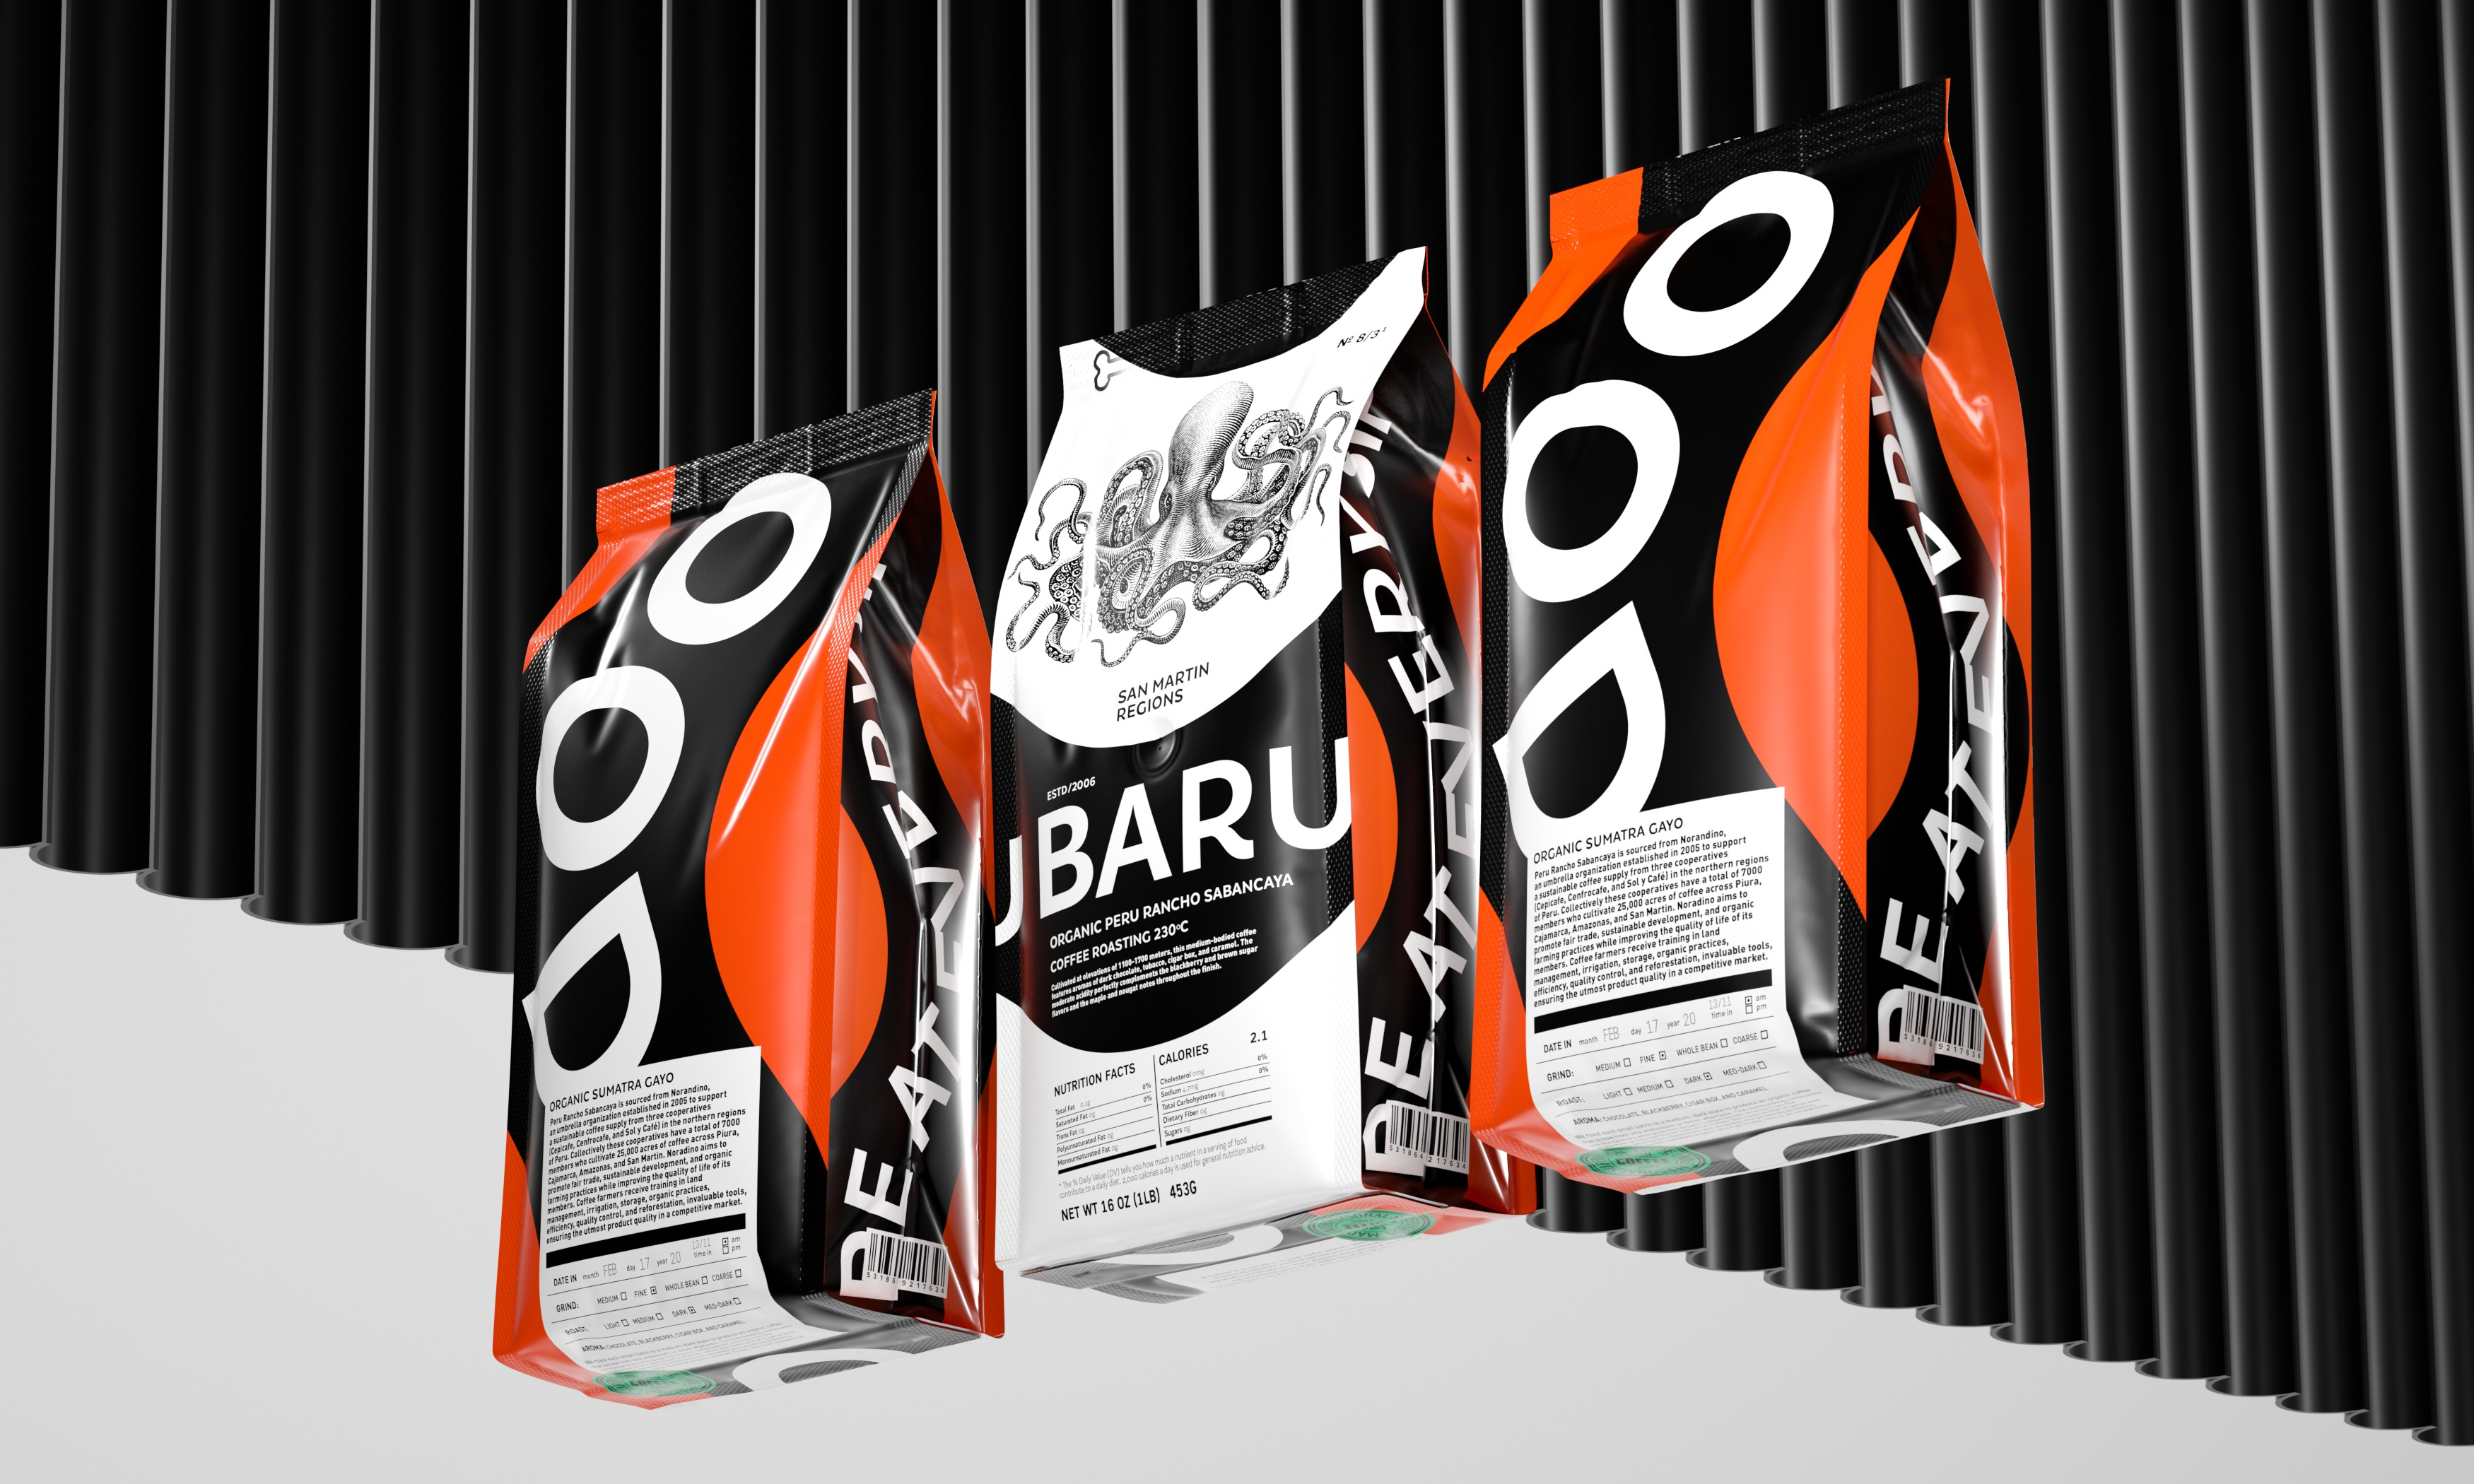 Baru Certified Organic Coffee Concept Designed by Constantin Bolimond